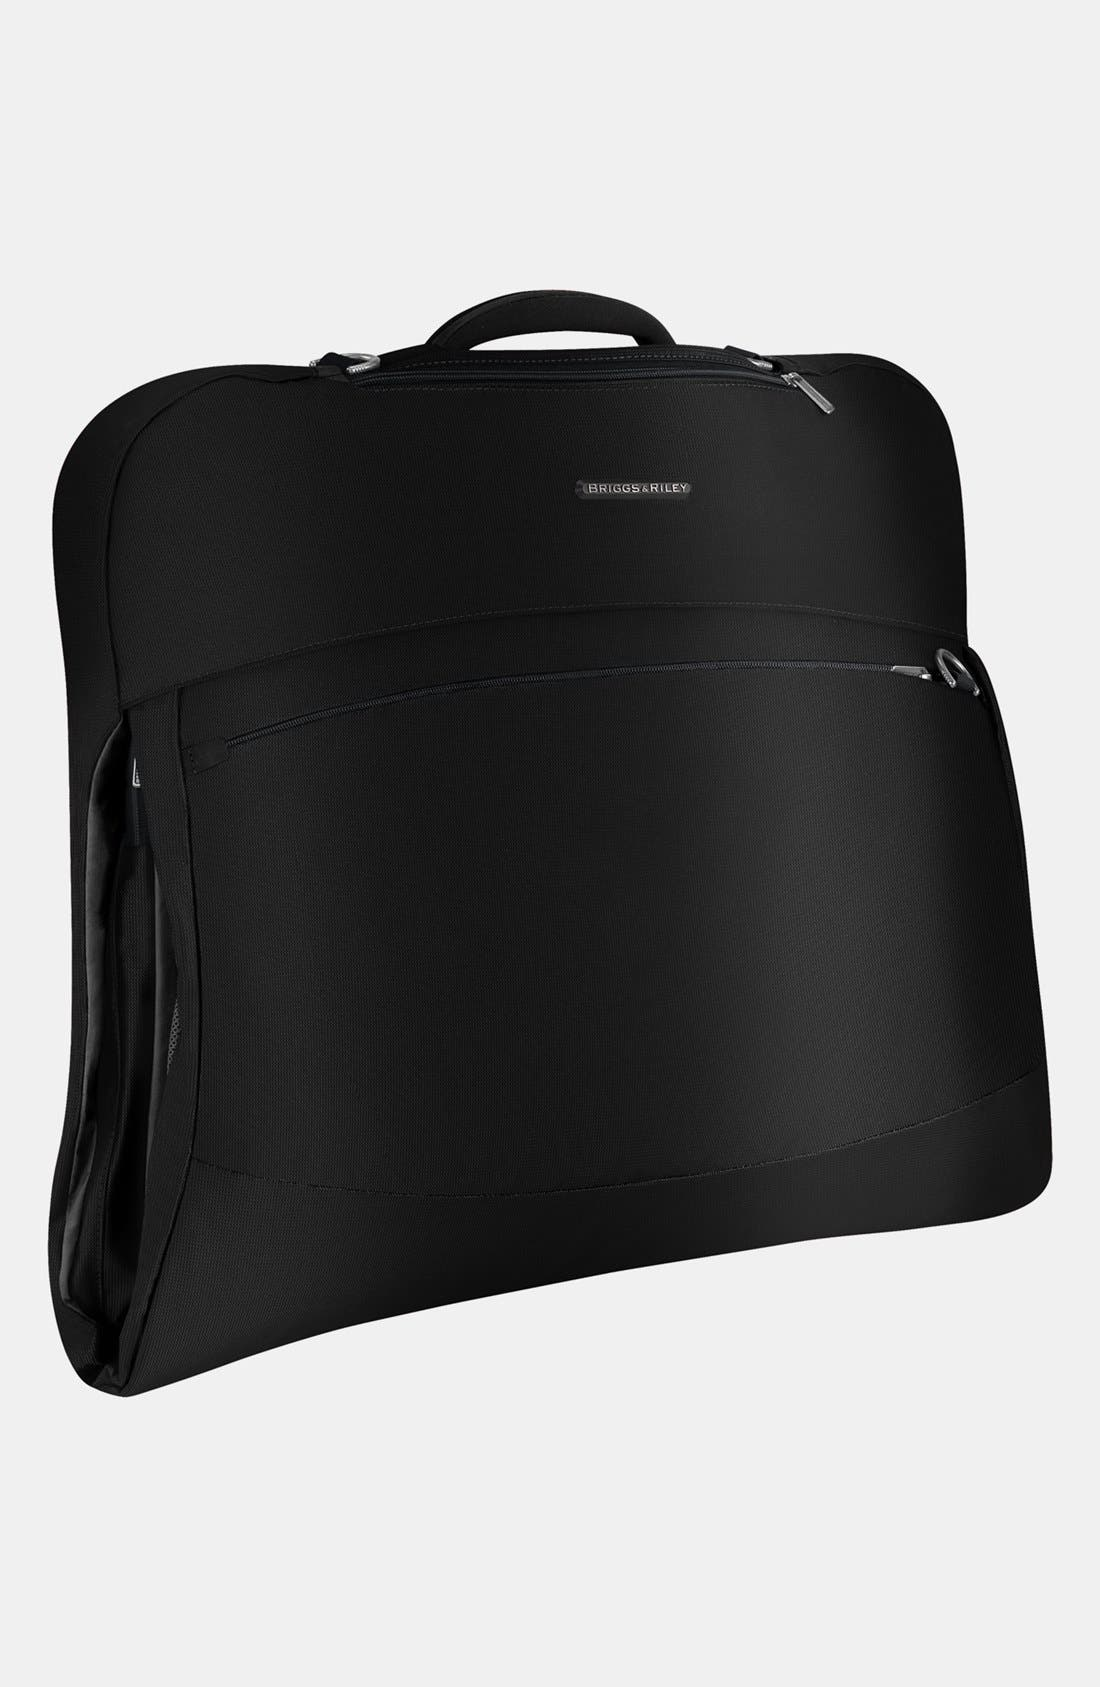 Main Image - Briggs & Riley 'Transcend Deluxe' Garment Bag